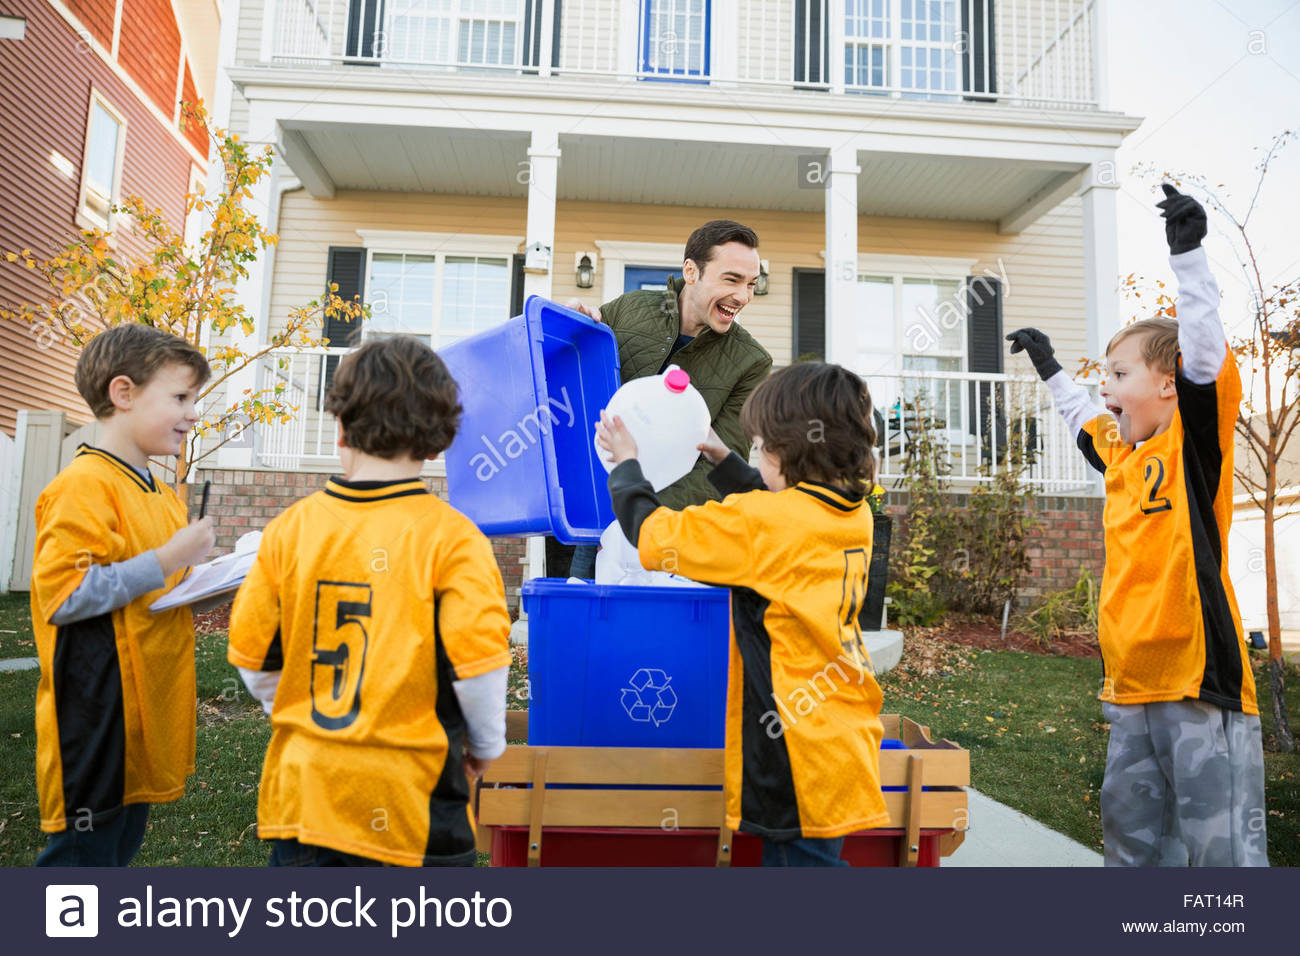 Coach and boys sports team gathering recycling neighborhood - Stock Image